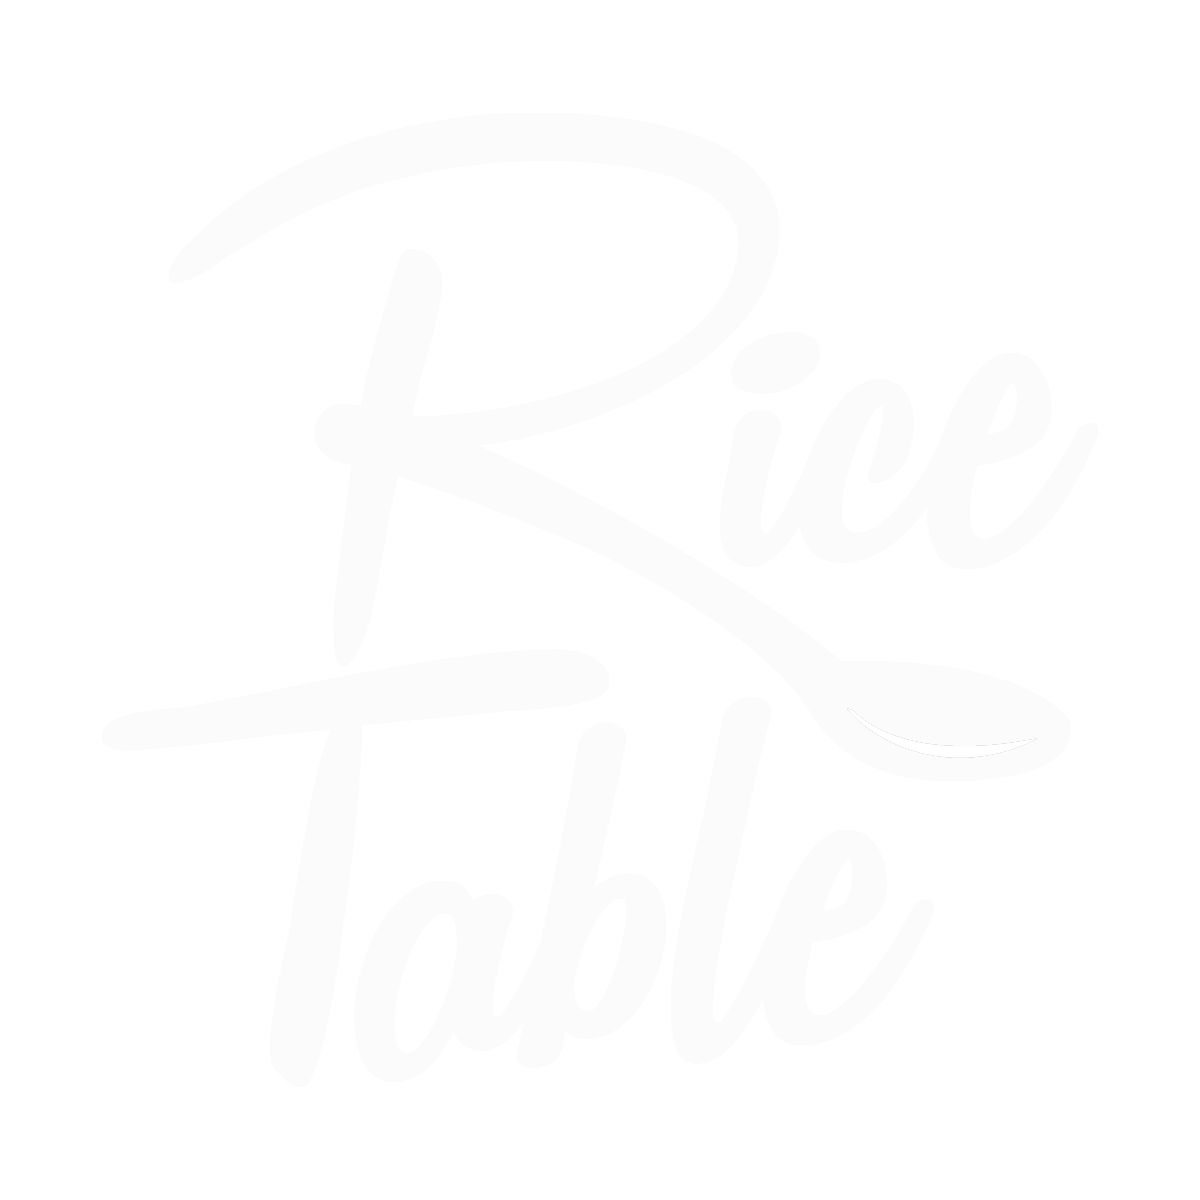 Rice Table